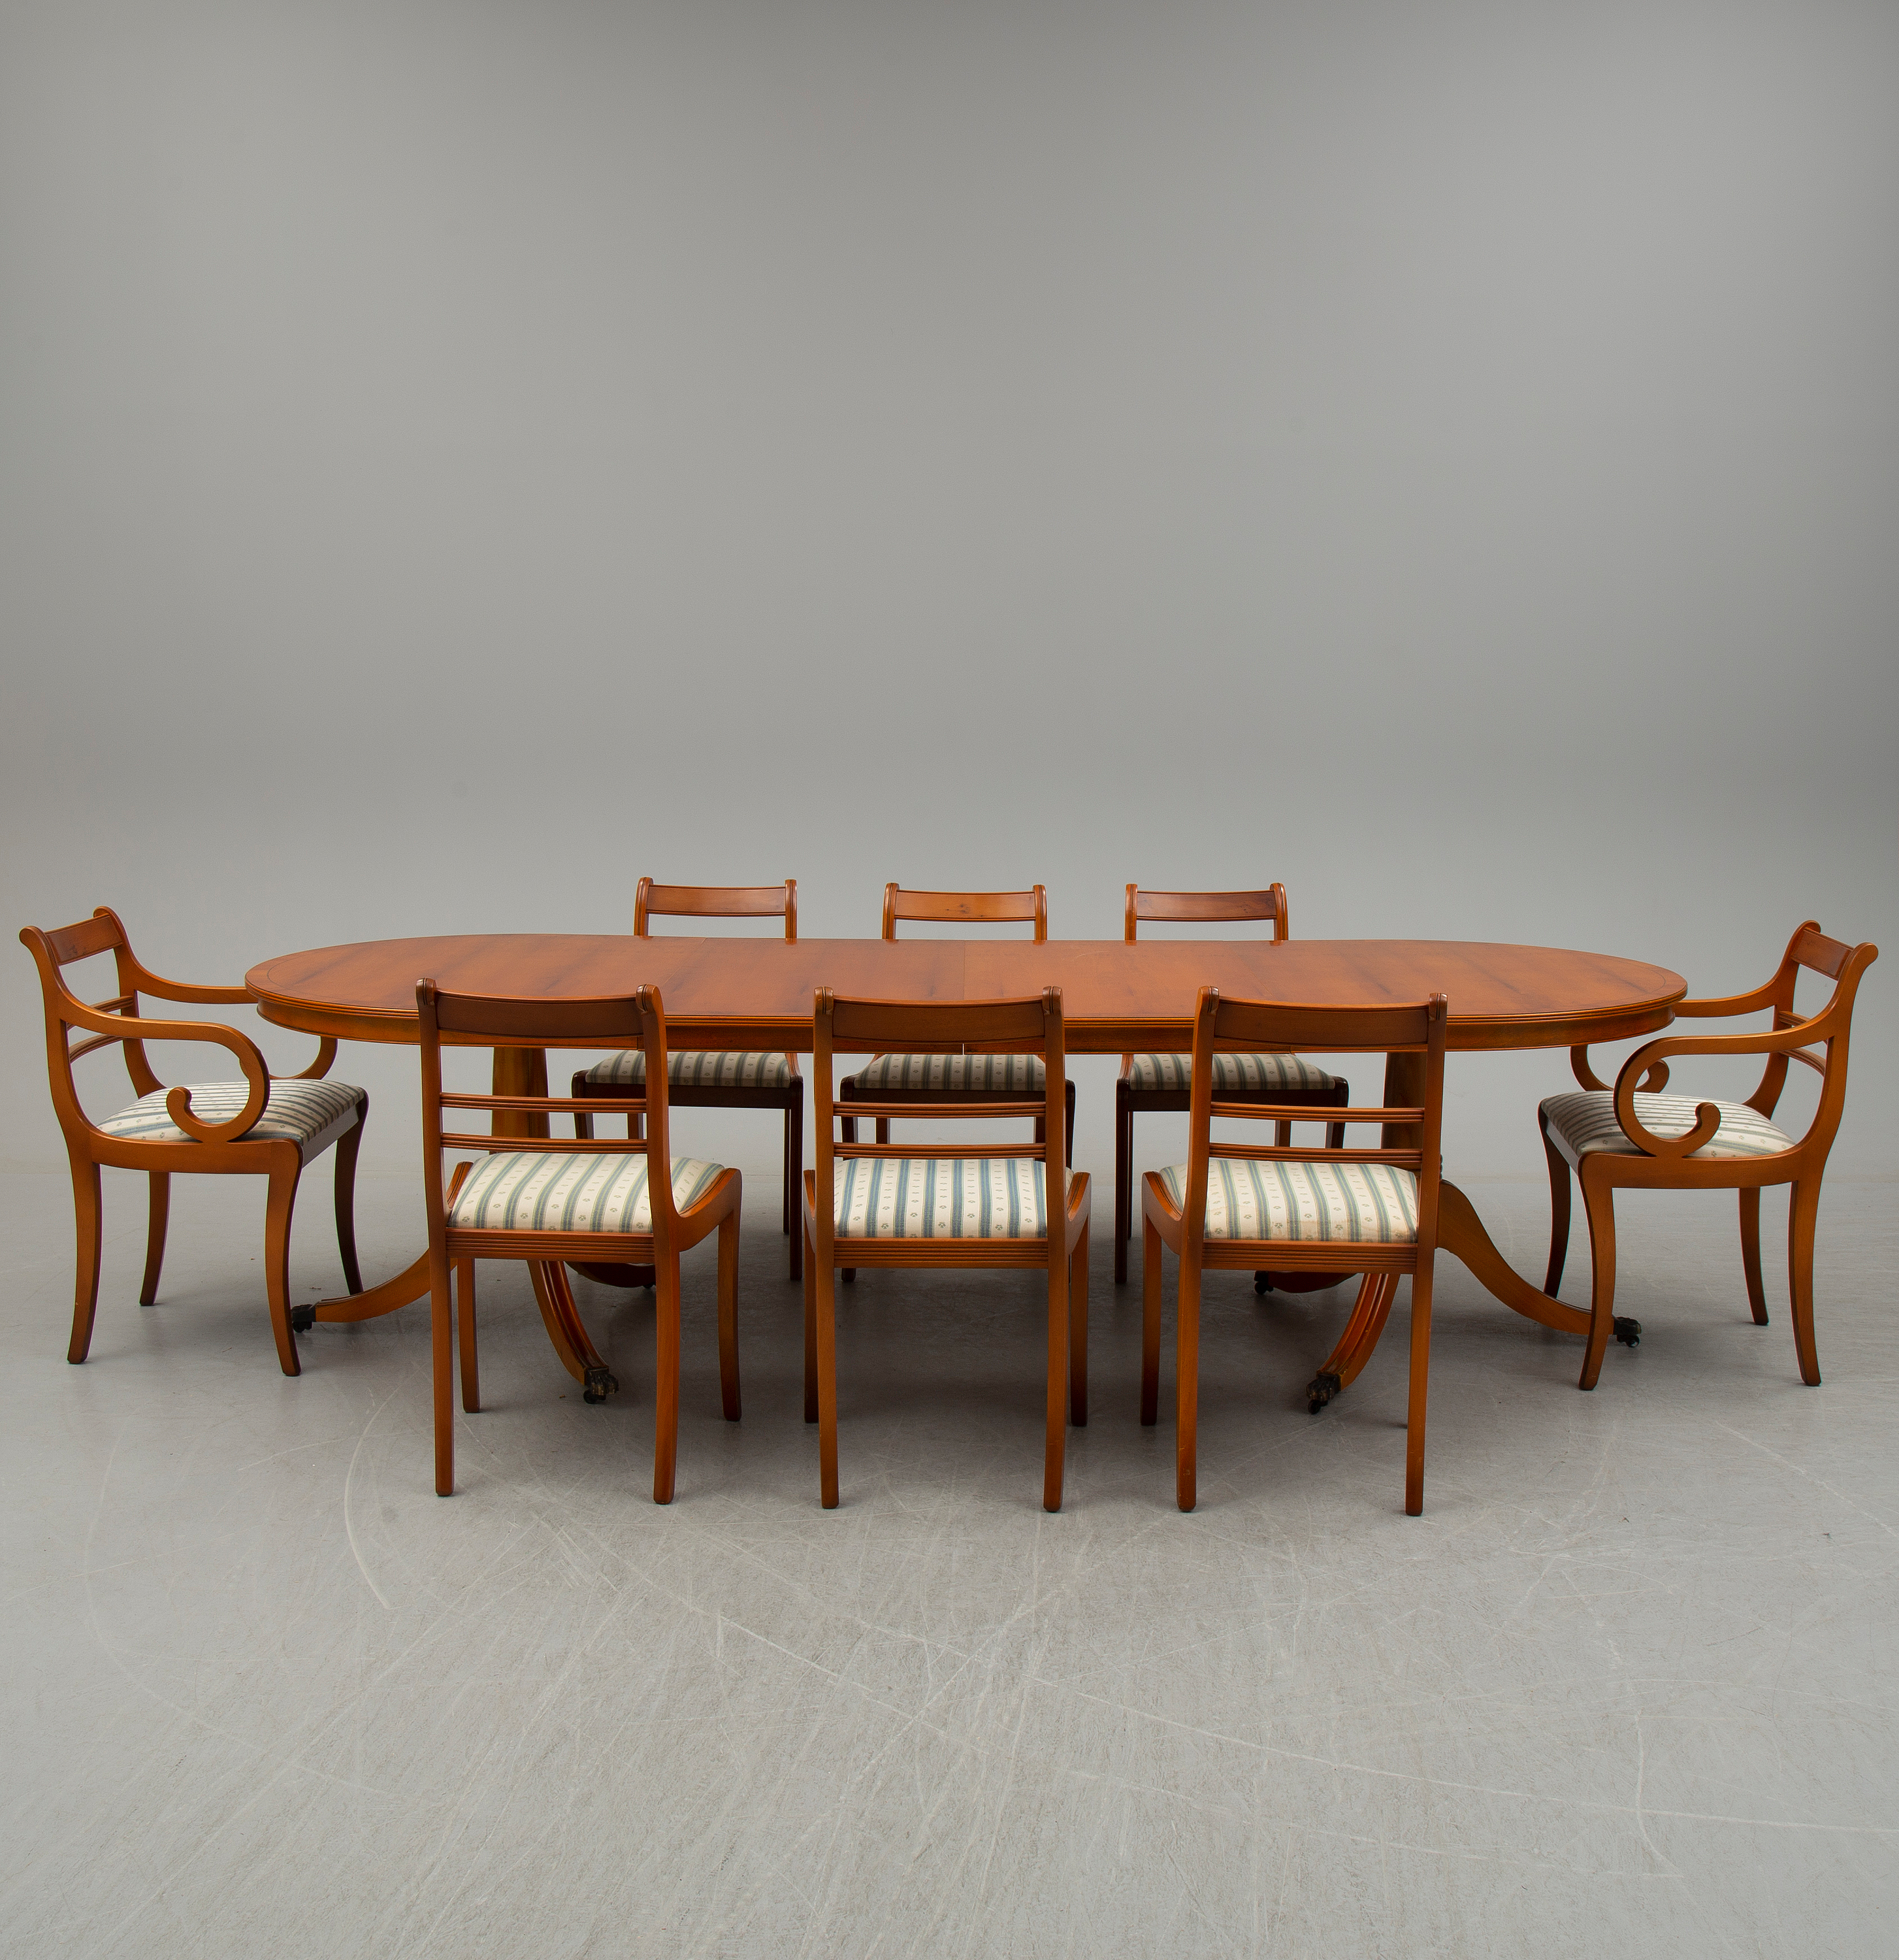 Super A Late 20Th Century Dining Table With Eight Chairs Bukowskis Interior Design Ideas Tzicisoteloinfo